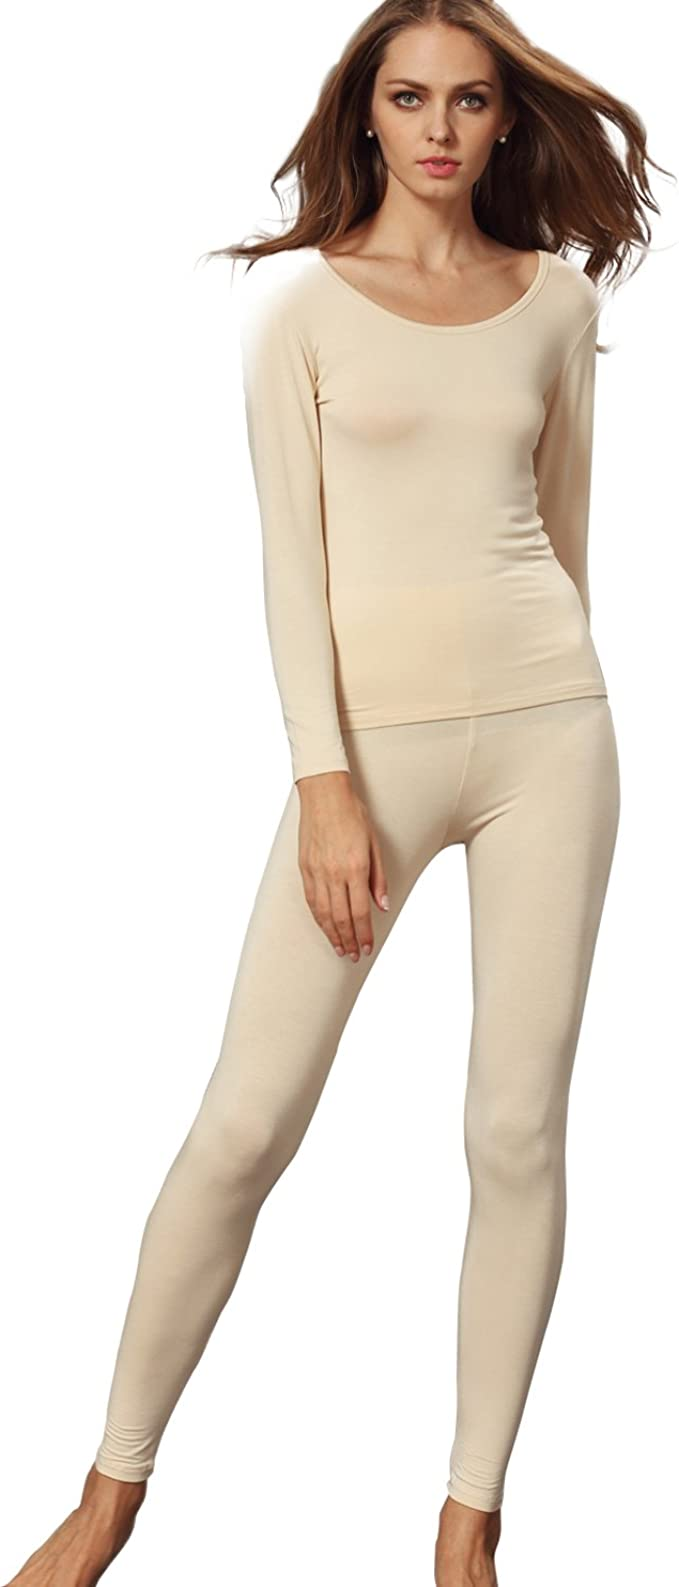 Womens Slim Scoop Neck Thermal Underwear Set Stretch Comfy Base Layer Long Johns